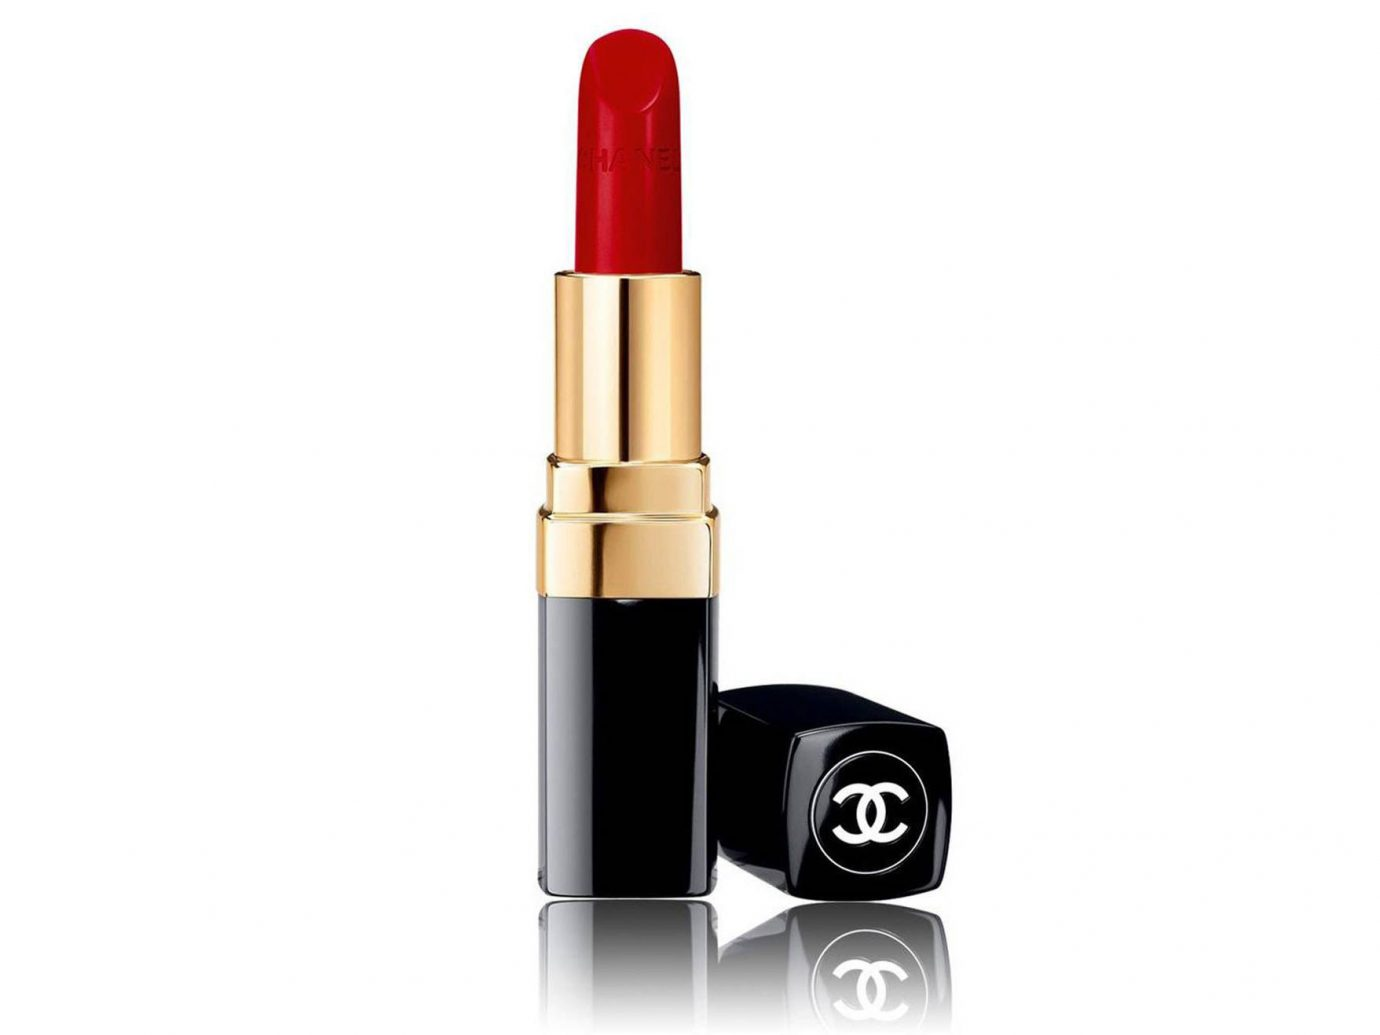 Style + Design Travel Shop Travel Tech Travel Tips toiletry cosmetic lipstick cosmetics product health & beauty product design